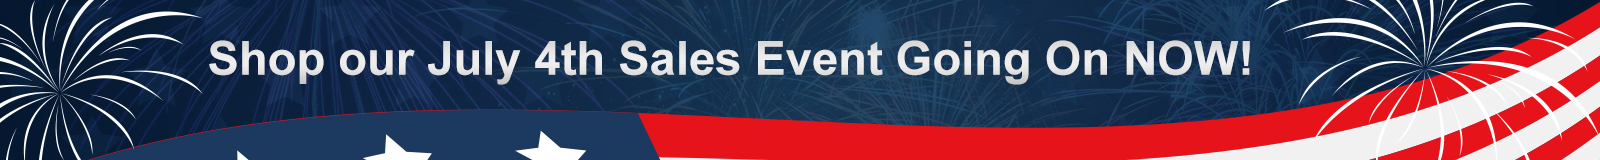 Memorial Day Sales Event Banner